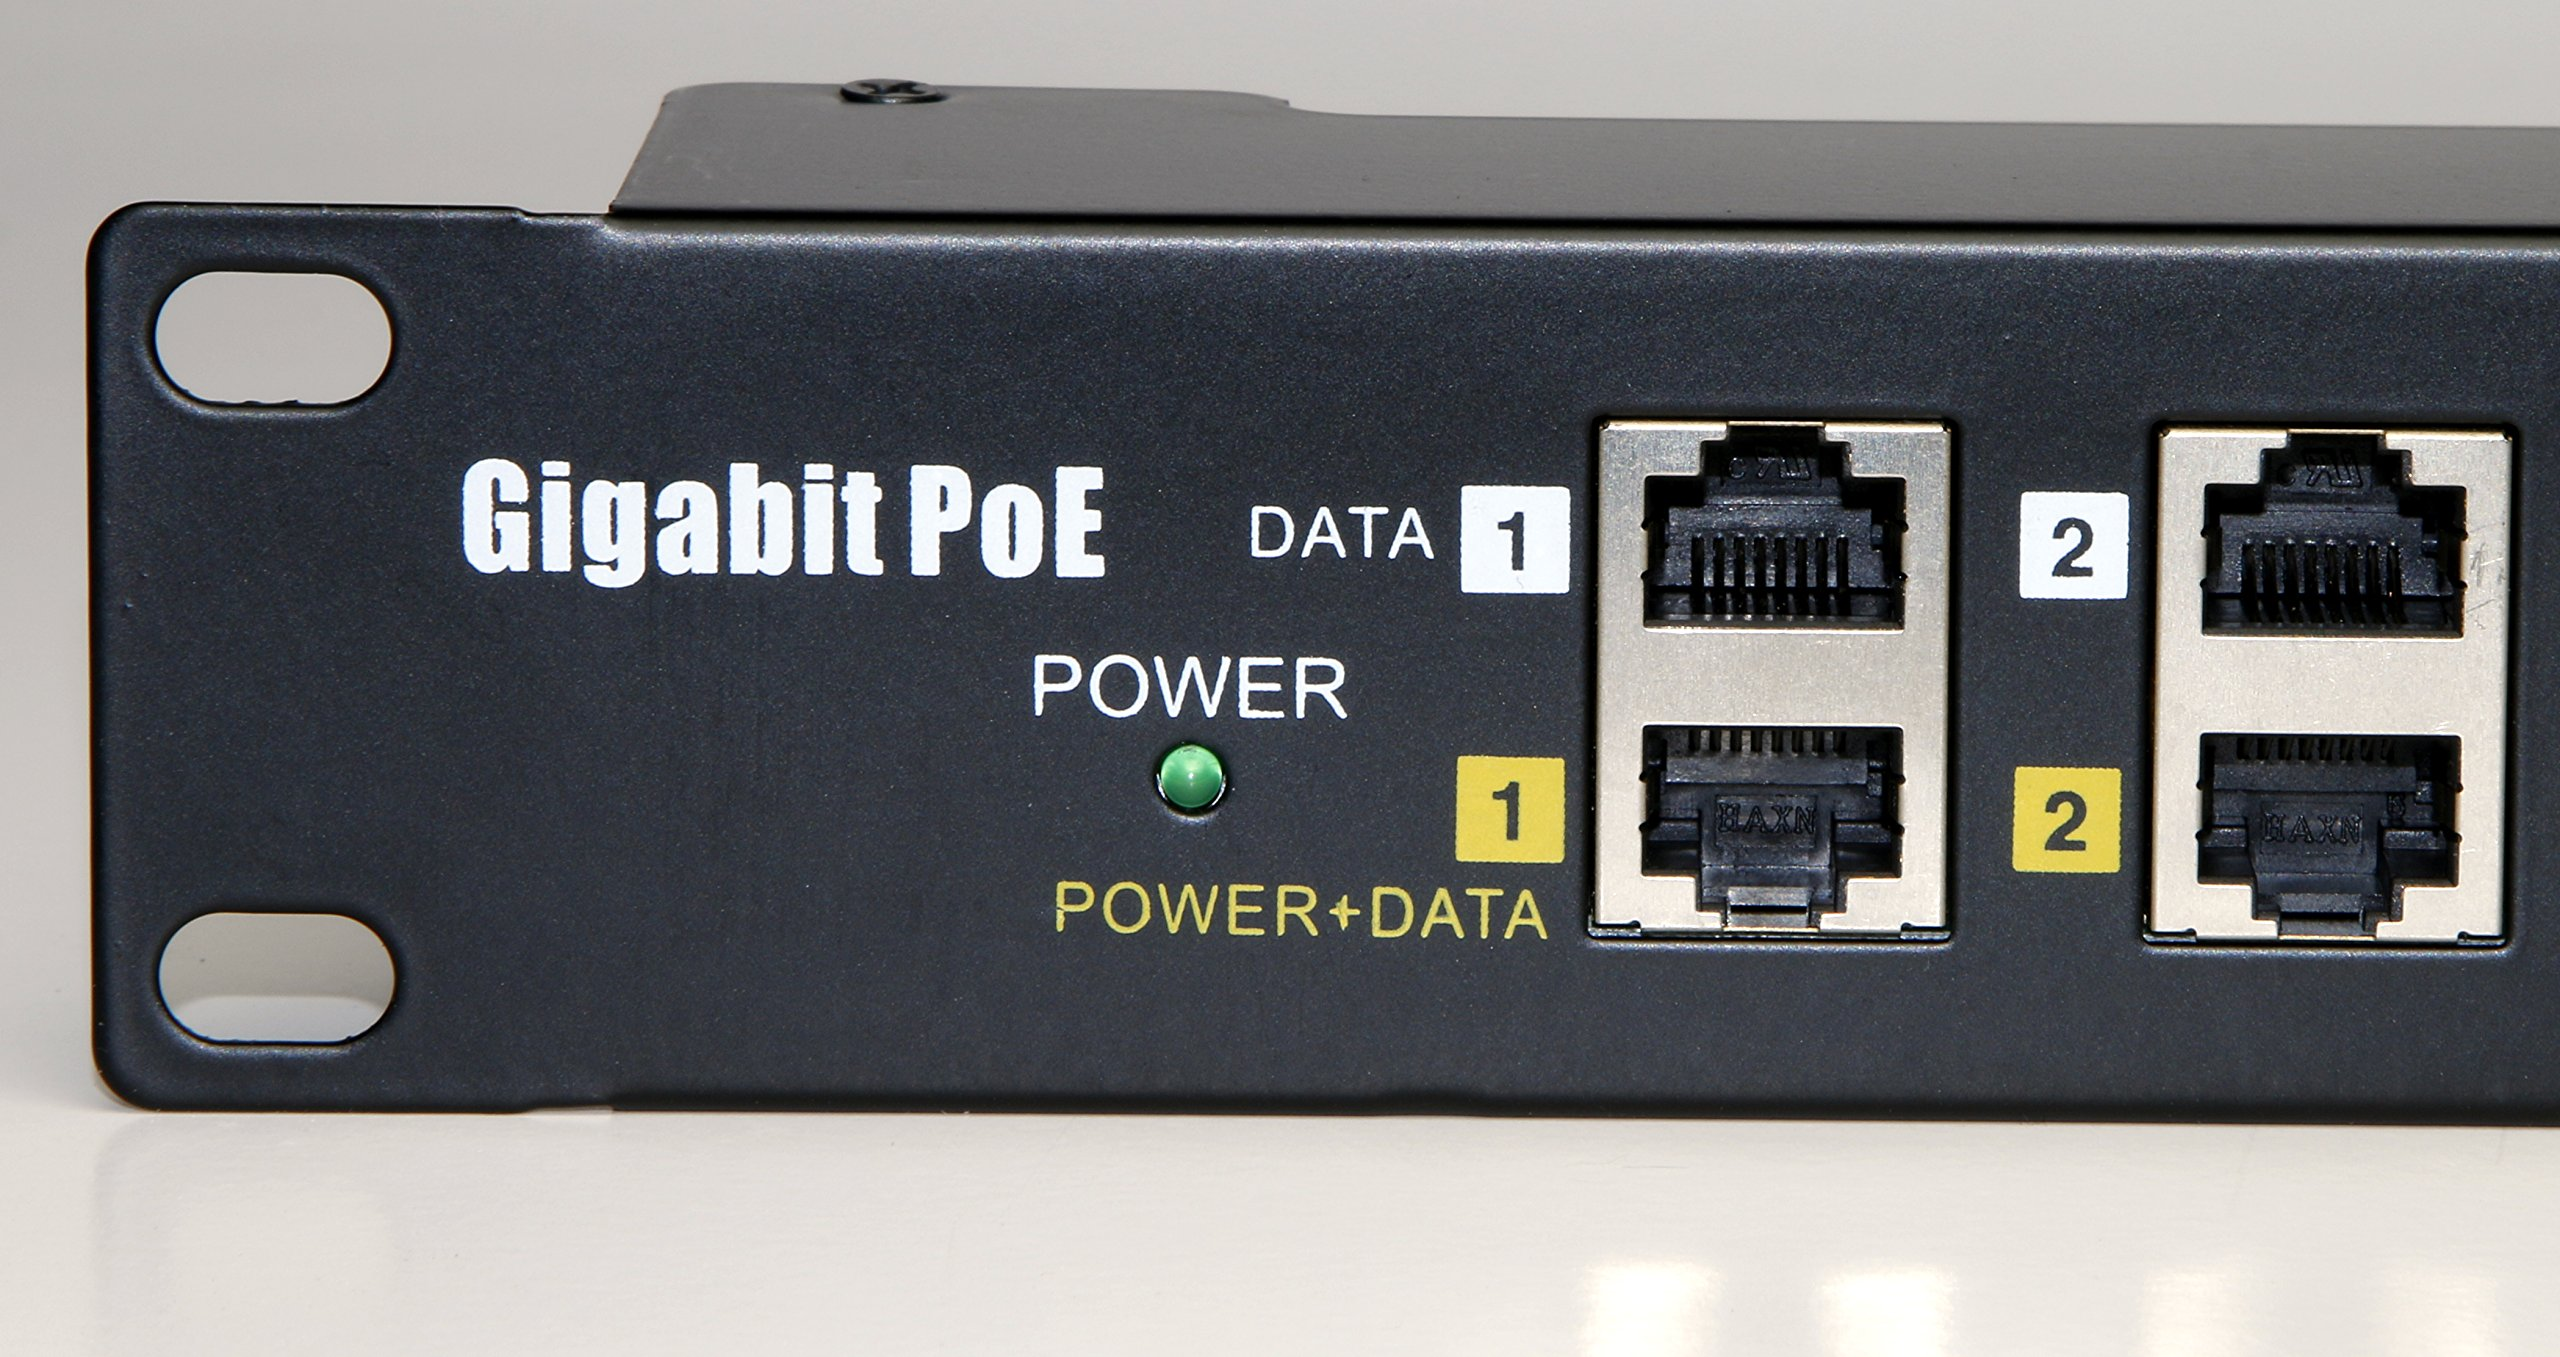 WS-GPOE-12-48v240w gigabit 12 Port Power over Ethernet Injector passive POE for 802.3af devices by WiFi-Texas (Image #3)